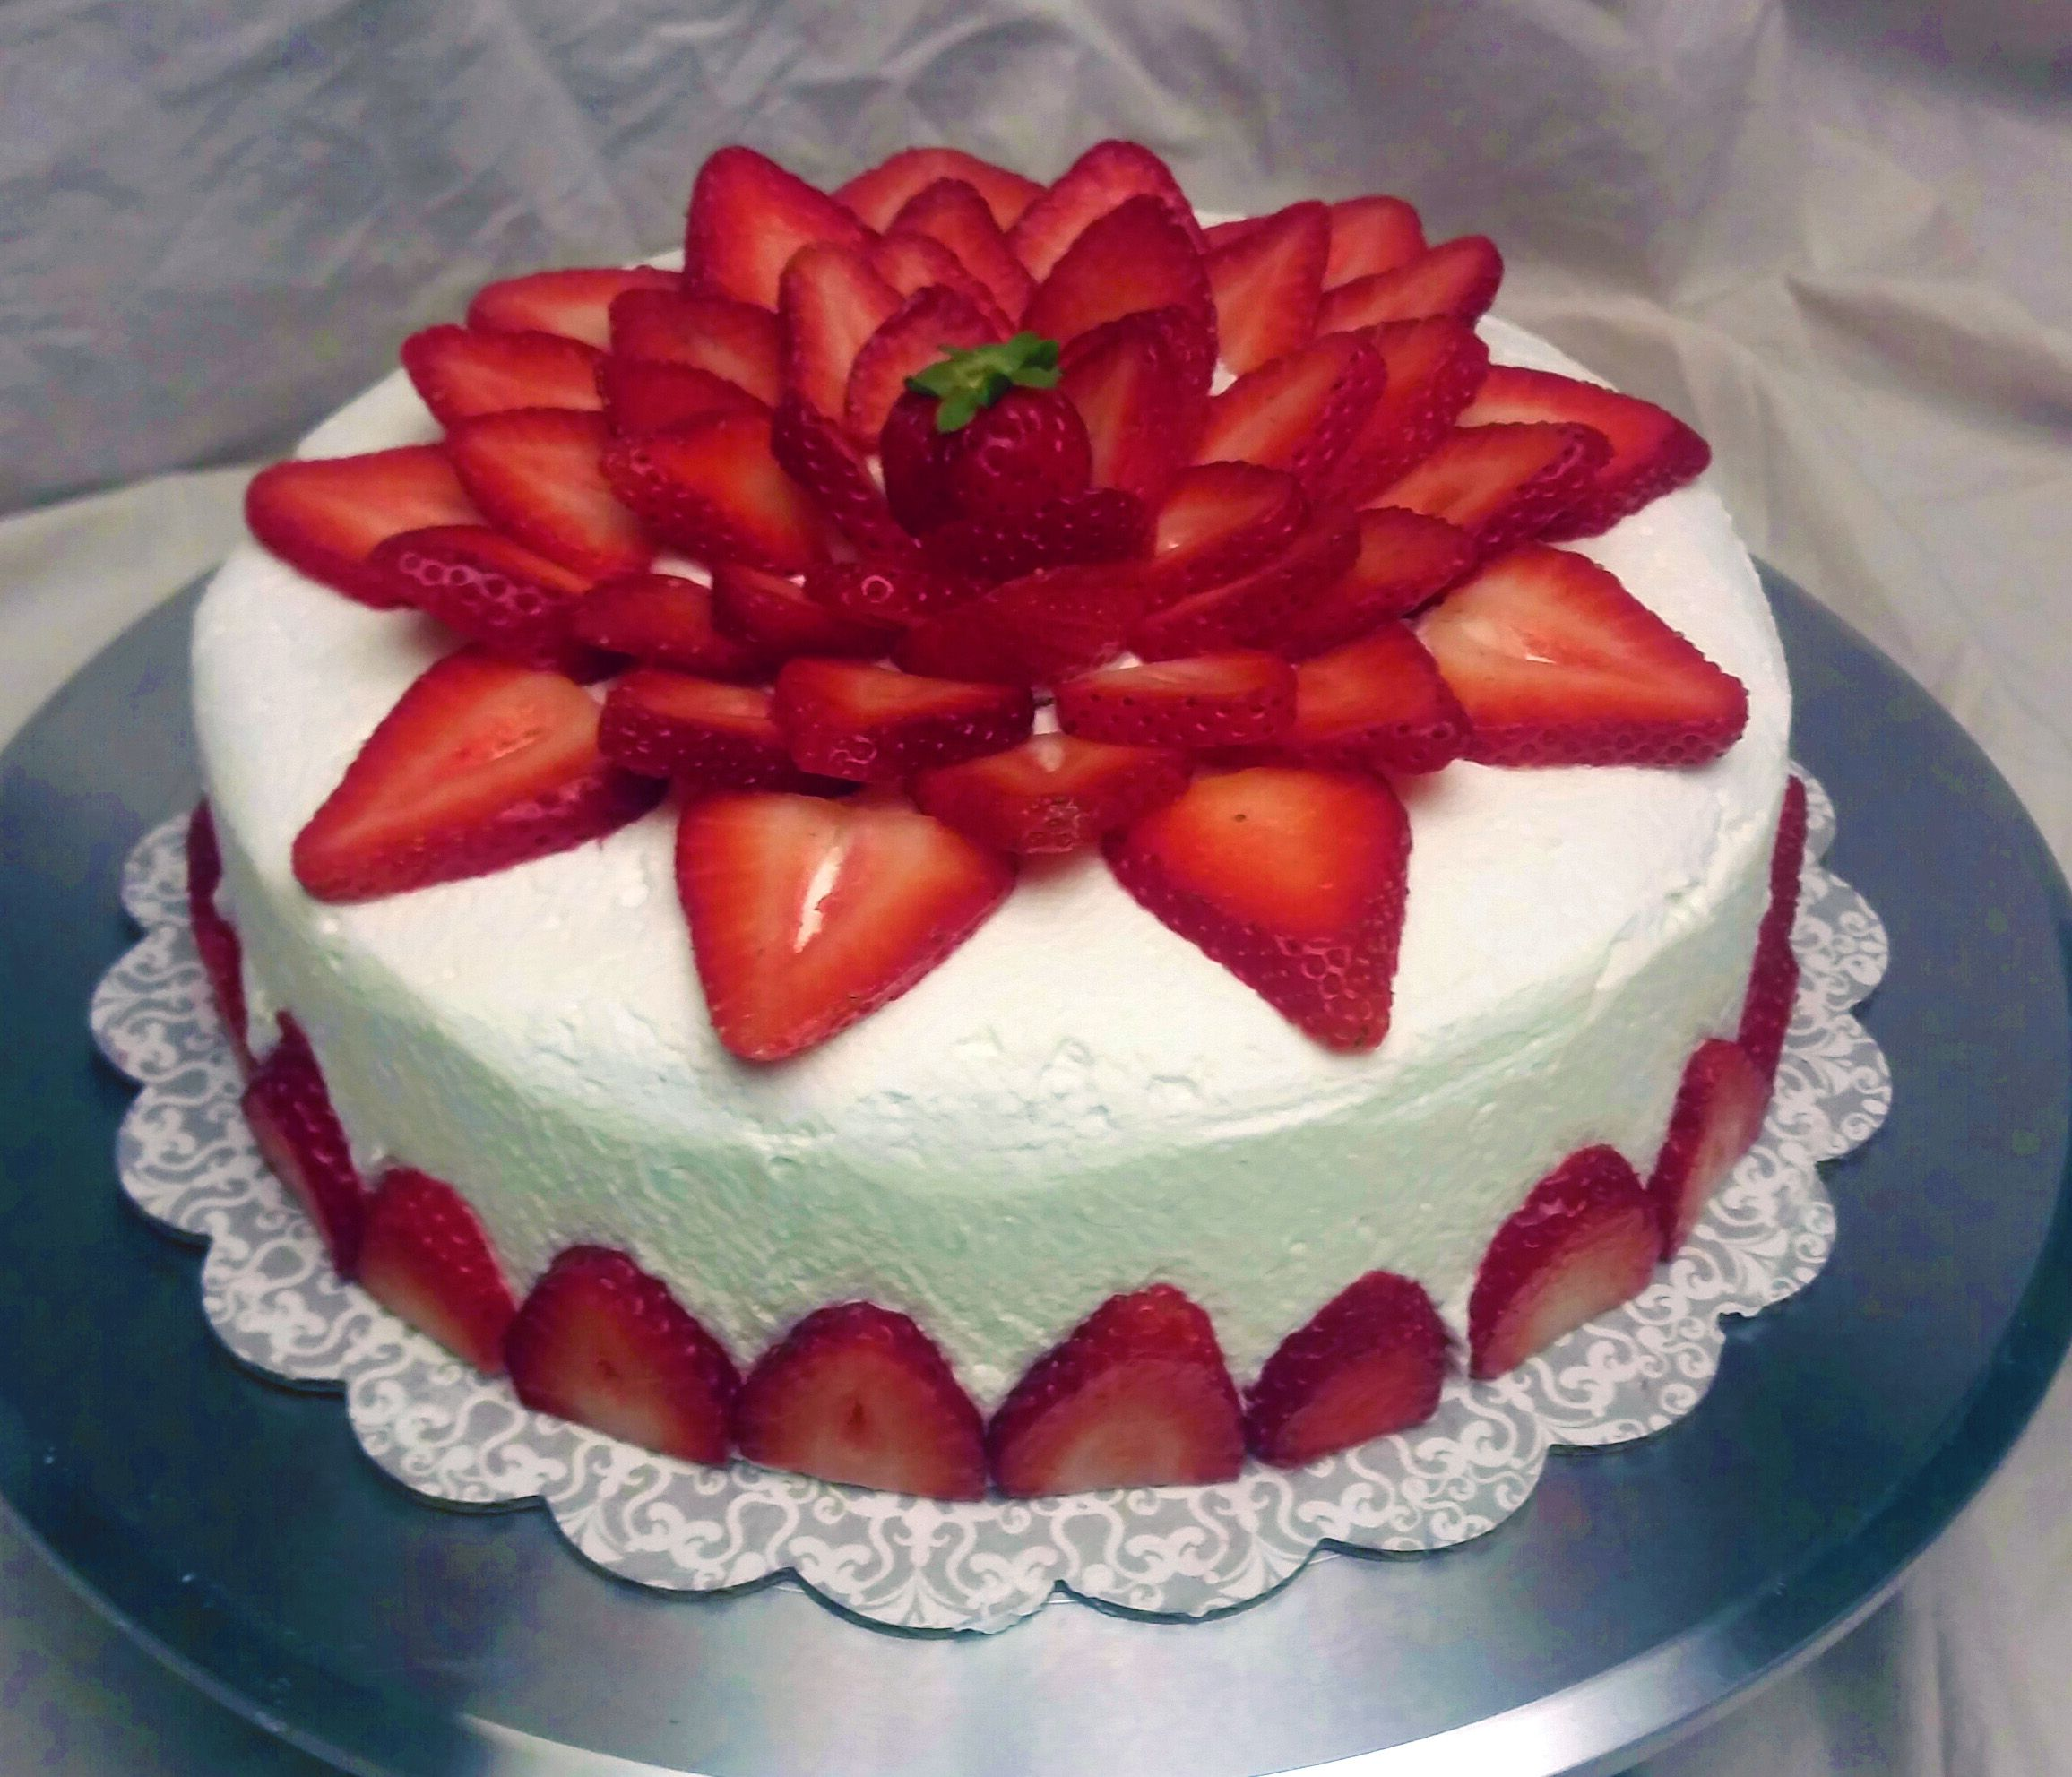 Http Www Rainbowsendpastries Com Wp Content Uploads 2014 09